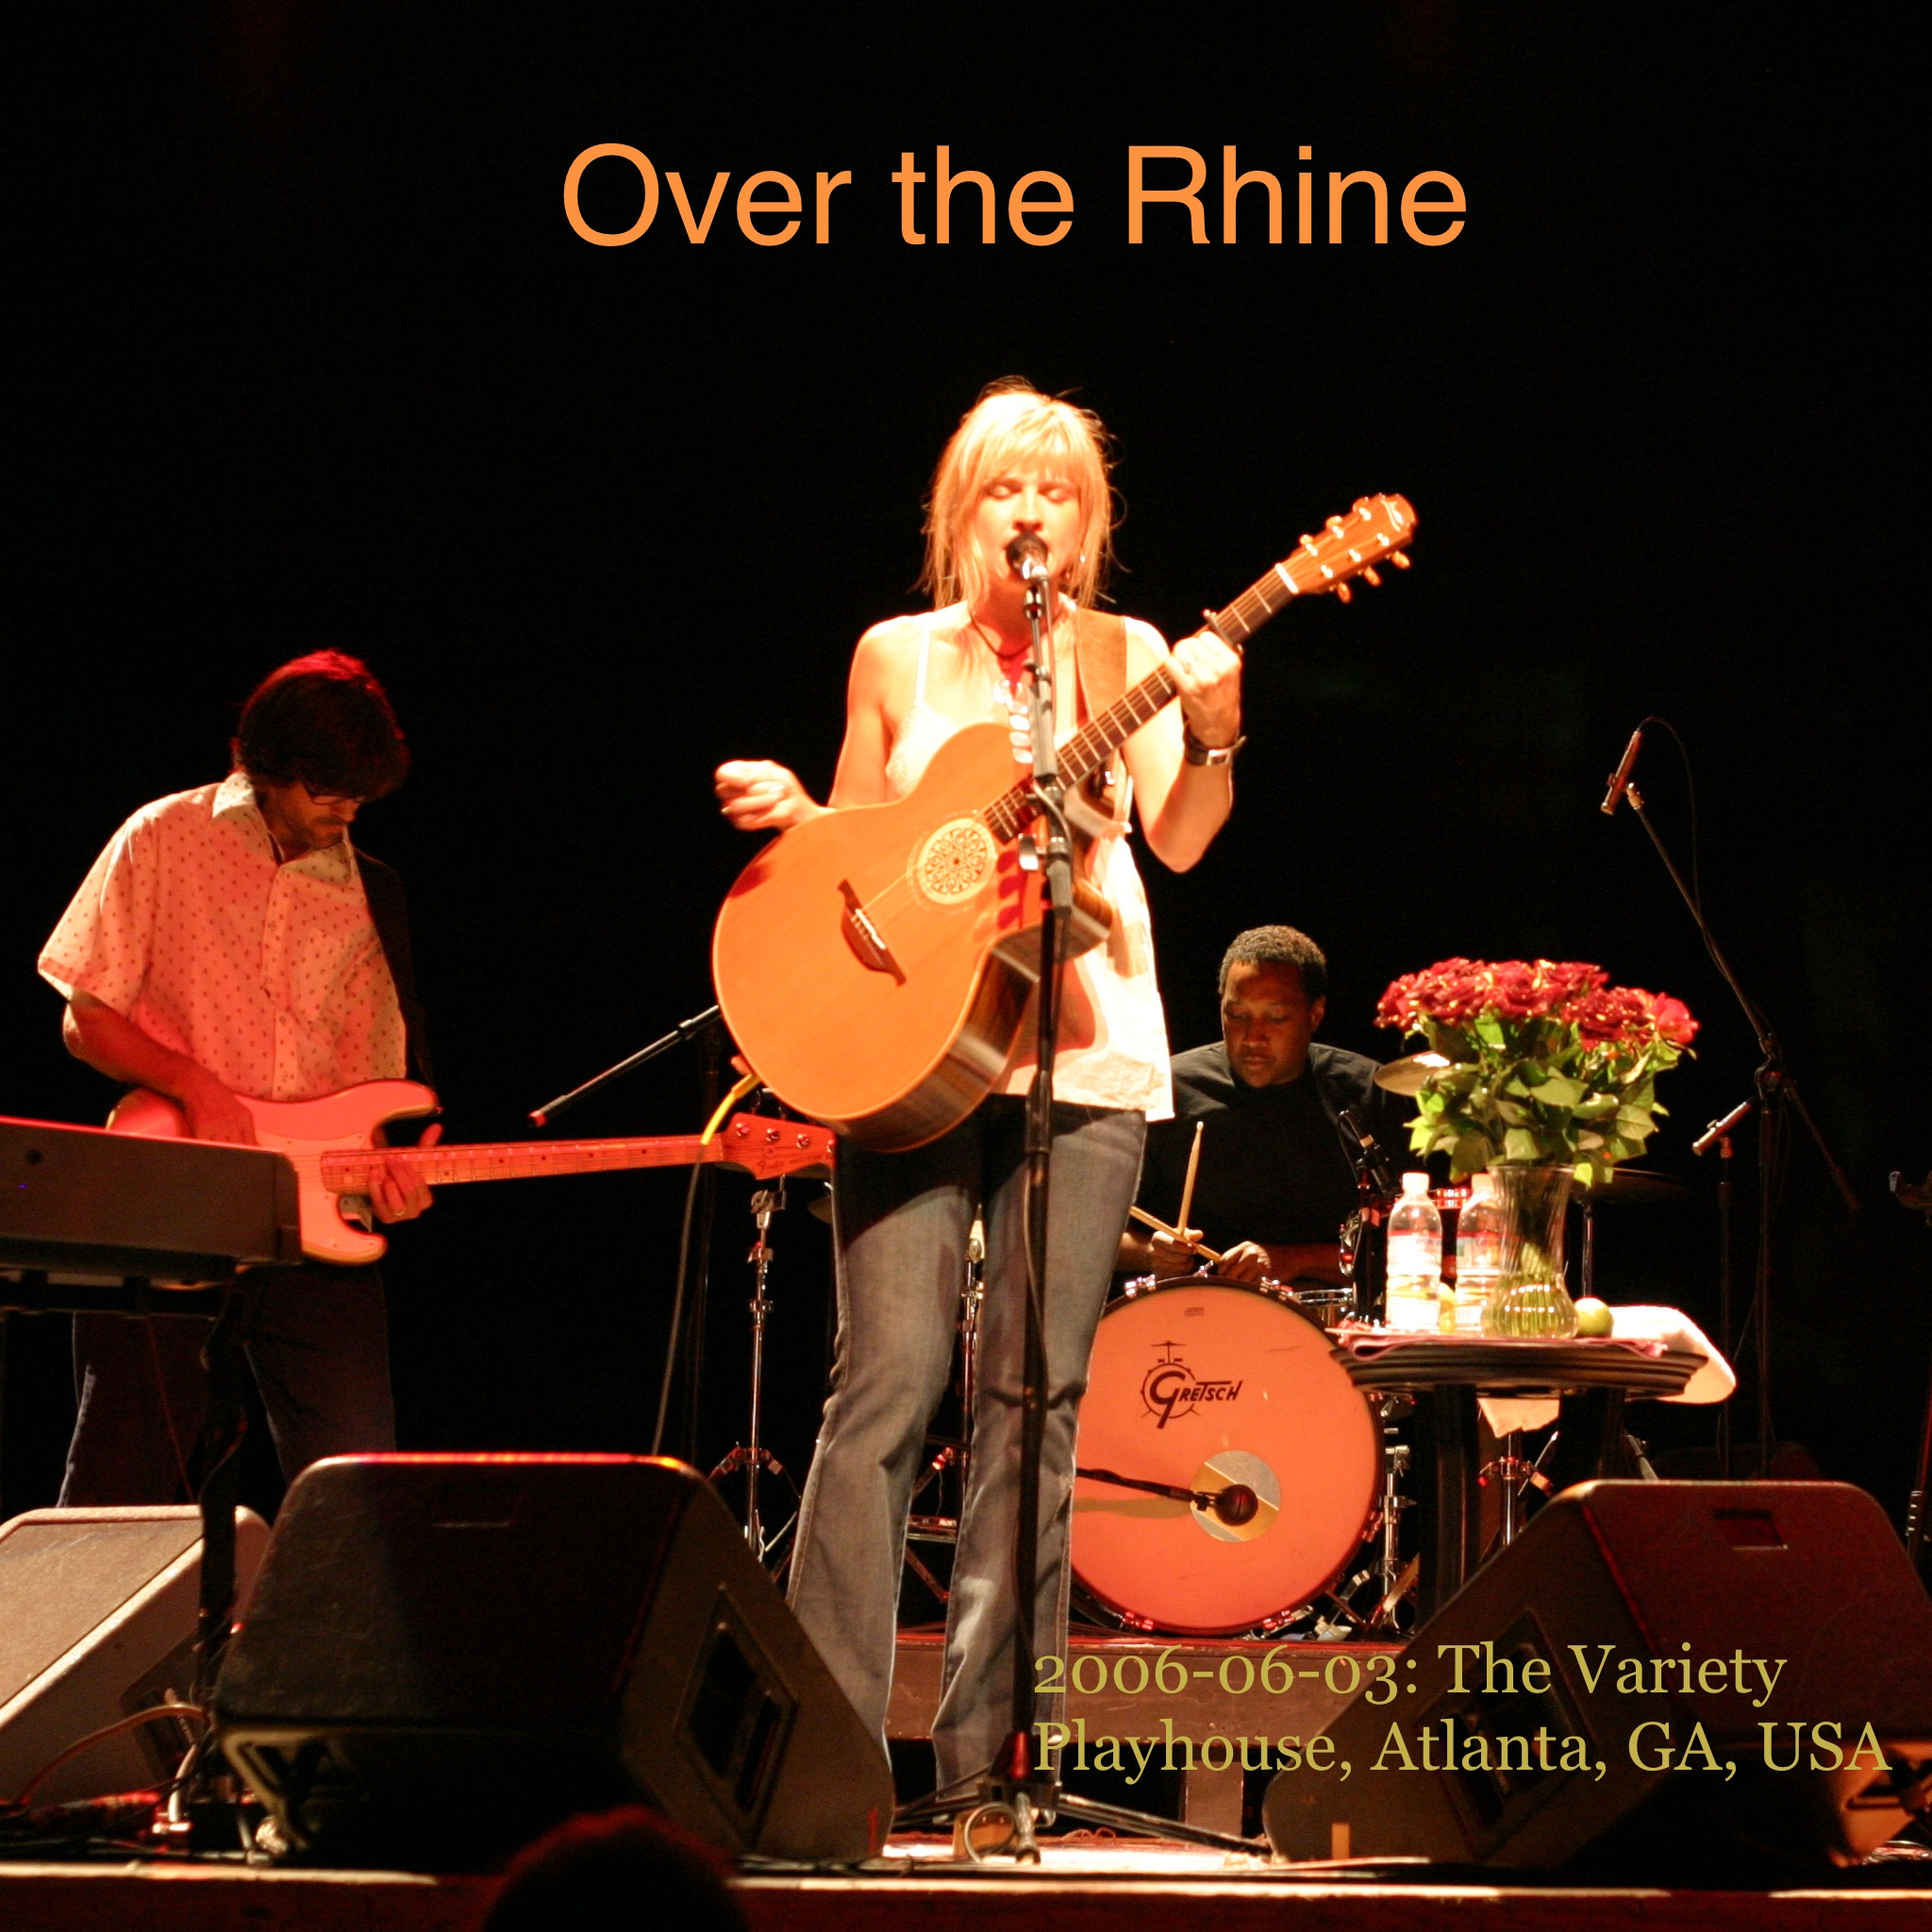 Over The Rhine Birchmere Music Hall Tickets Over The